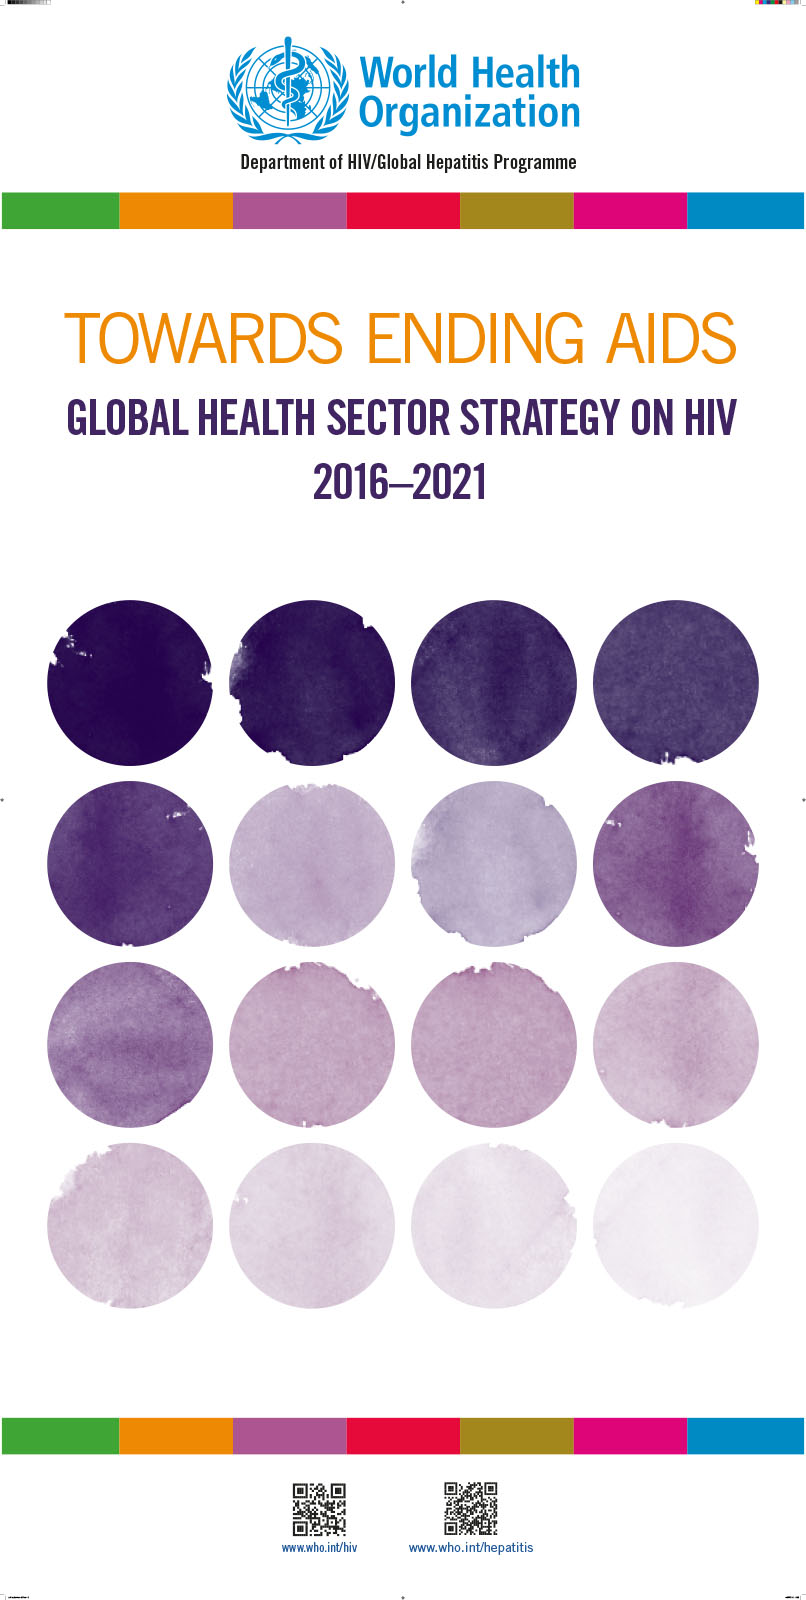 WHO@AIDS 2016 pull-up banner for the Global Health Sector Strategy on HIV